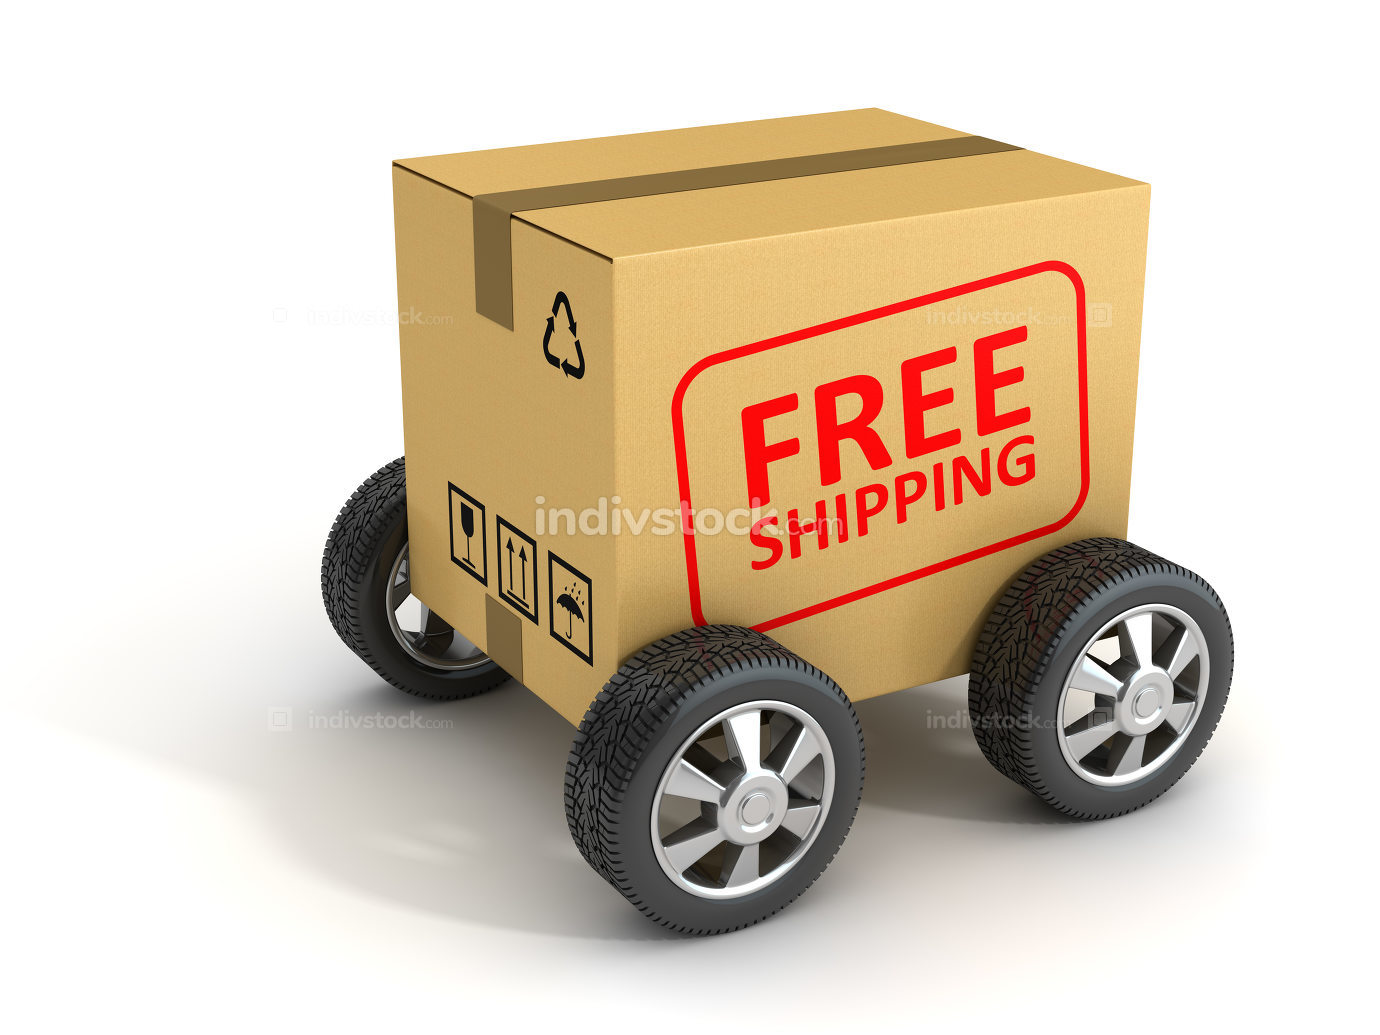 Free Shipping Cardboard with Wheel 3d rendered